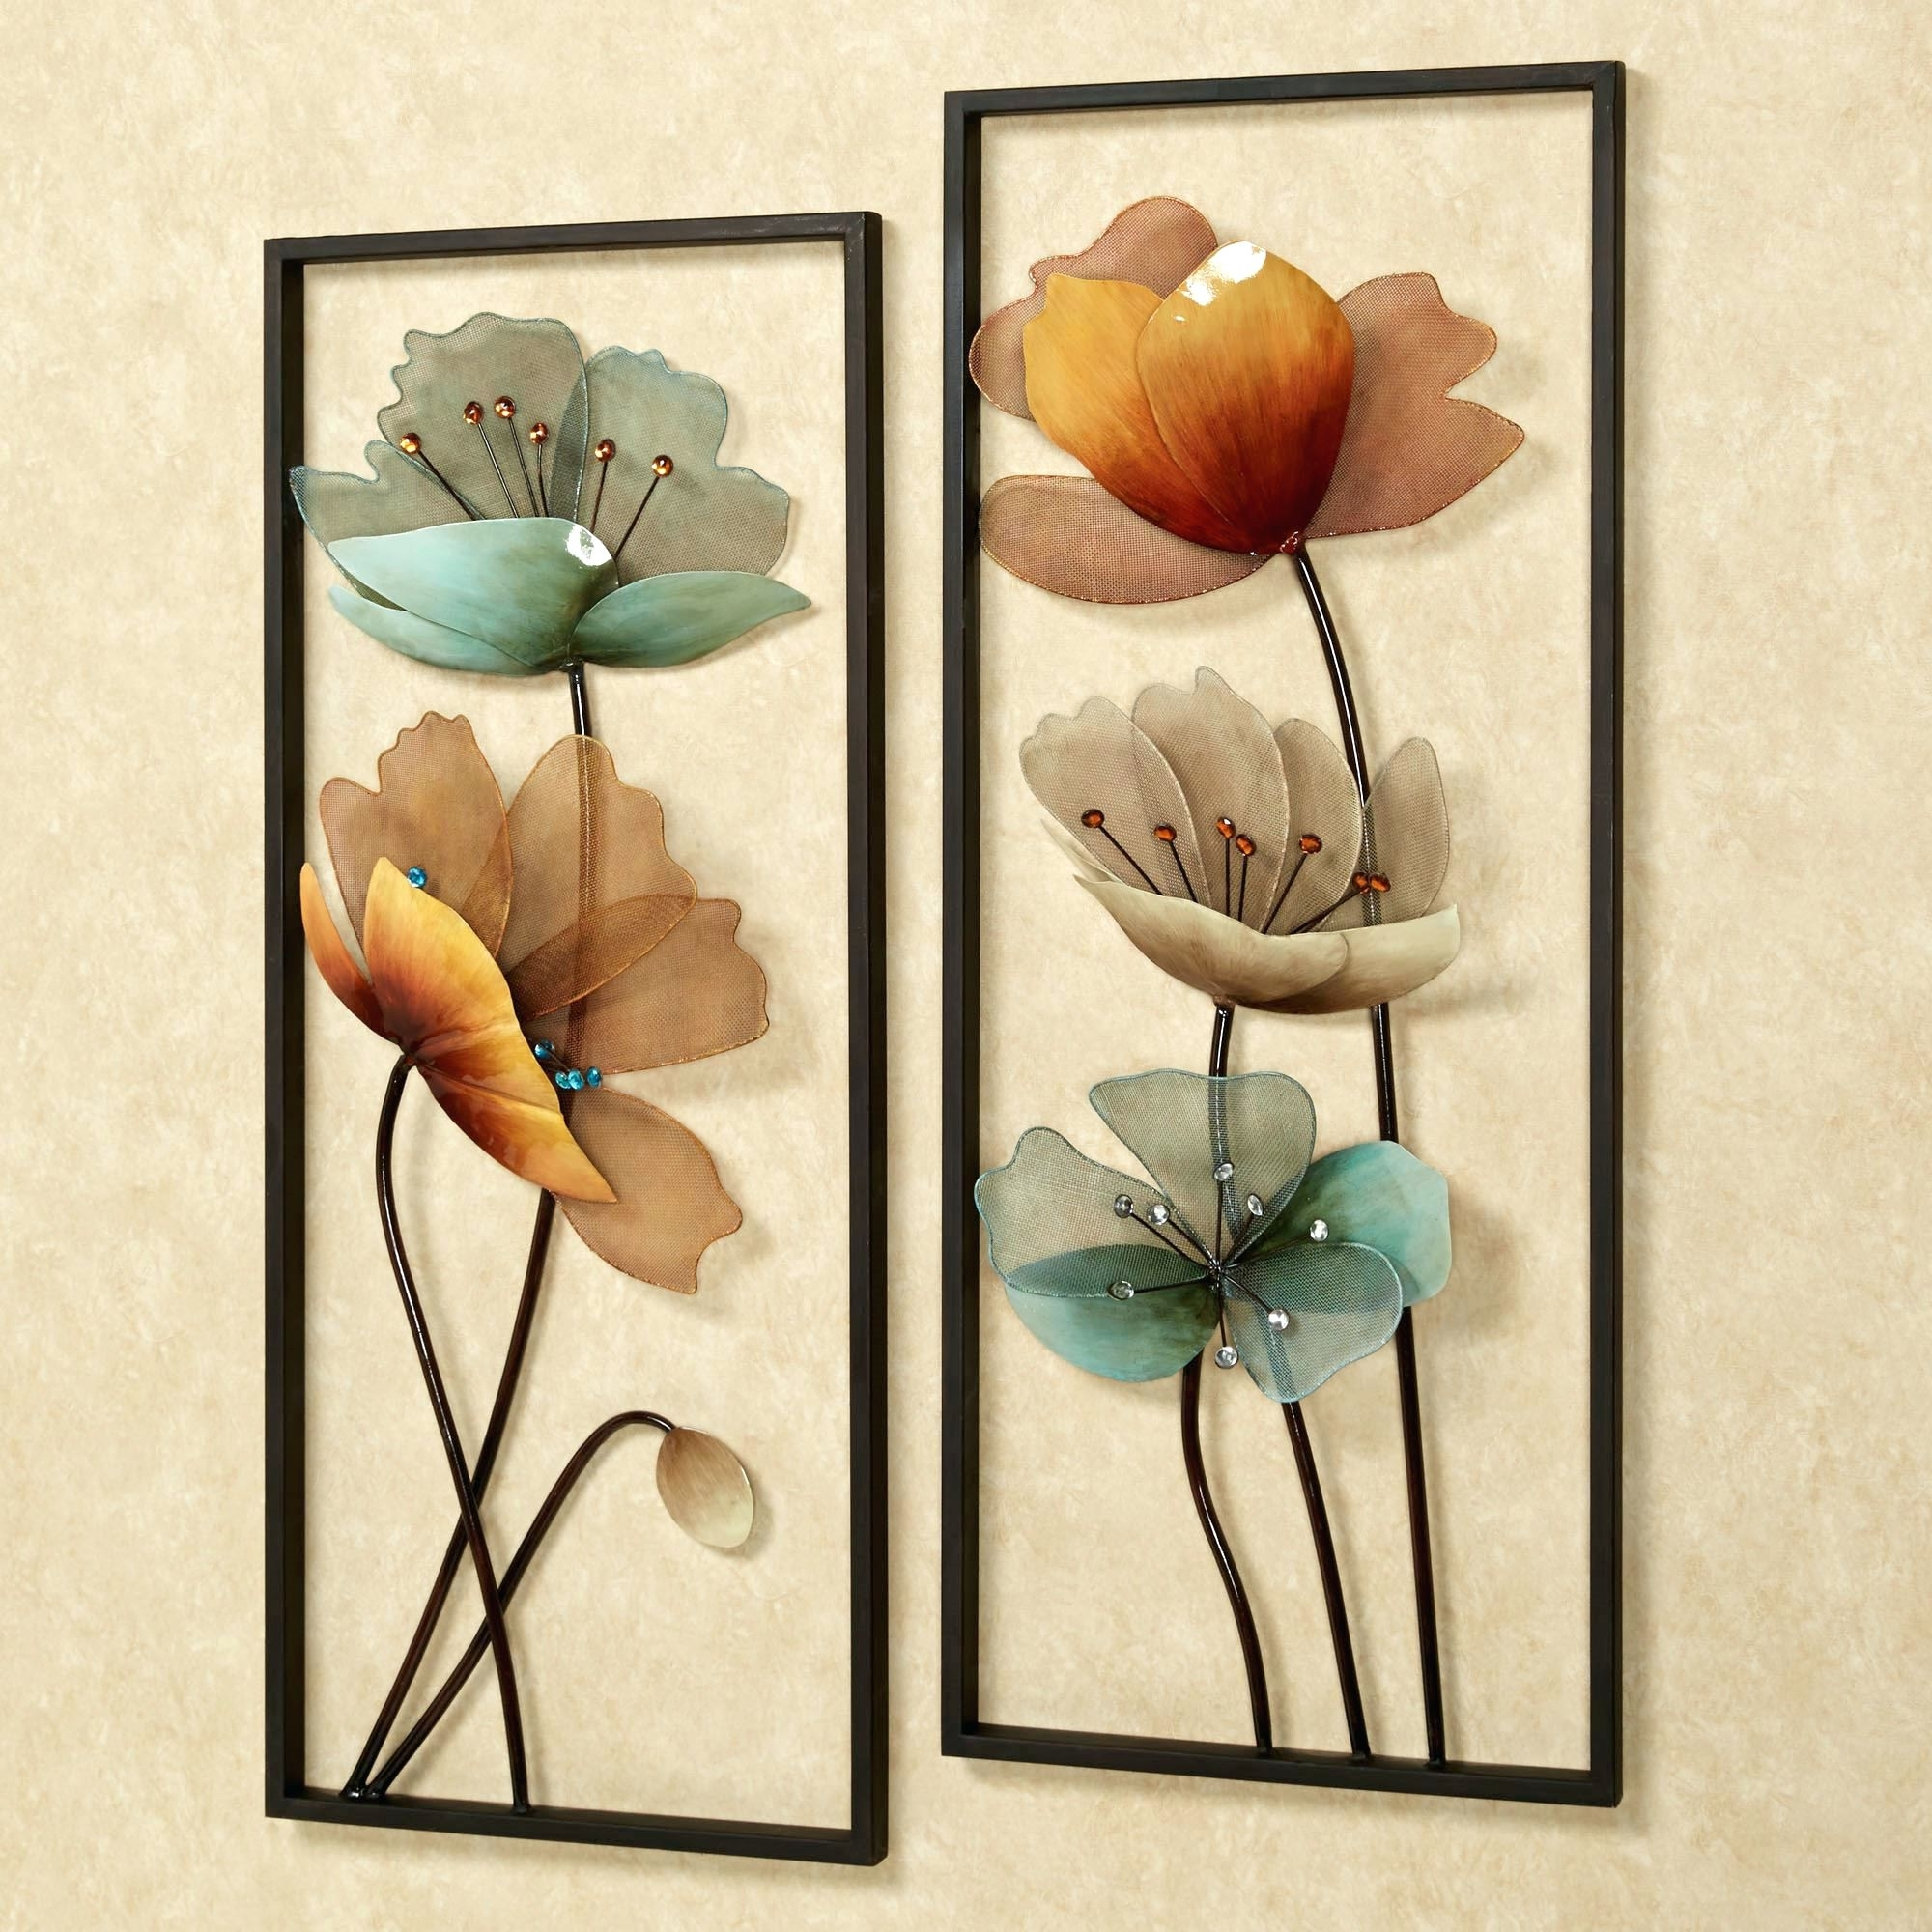 Flowers Wall Accents Intended For Recent Wall Arts ~ Turquoise Flower Ombre Metal Wall Art Turquoise Bloom (View 8 of 15)